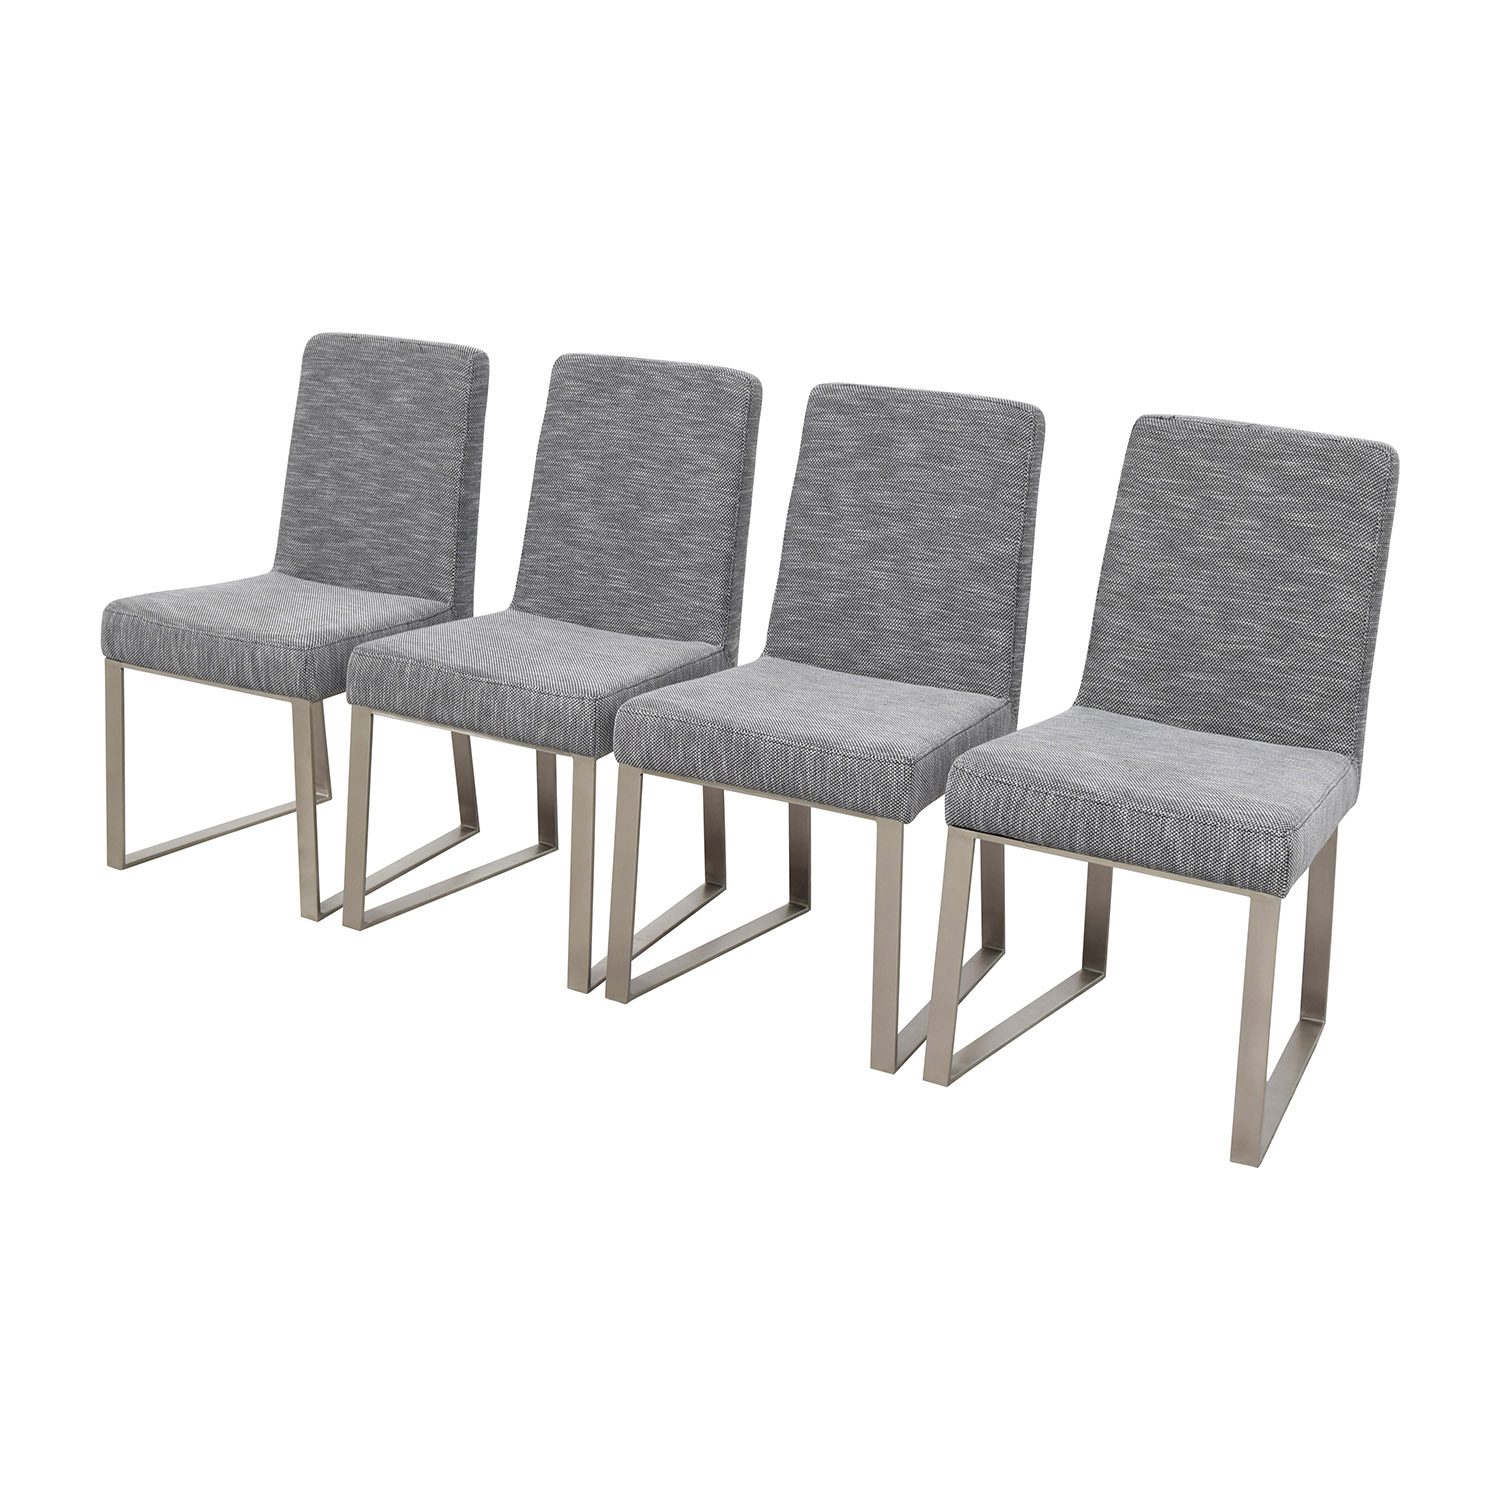 InMod InMod Vivo Grey Chairs coupon